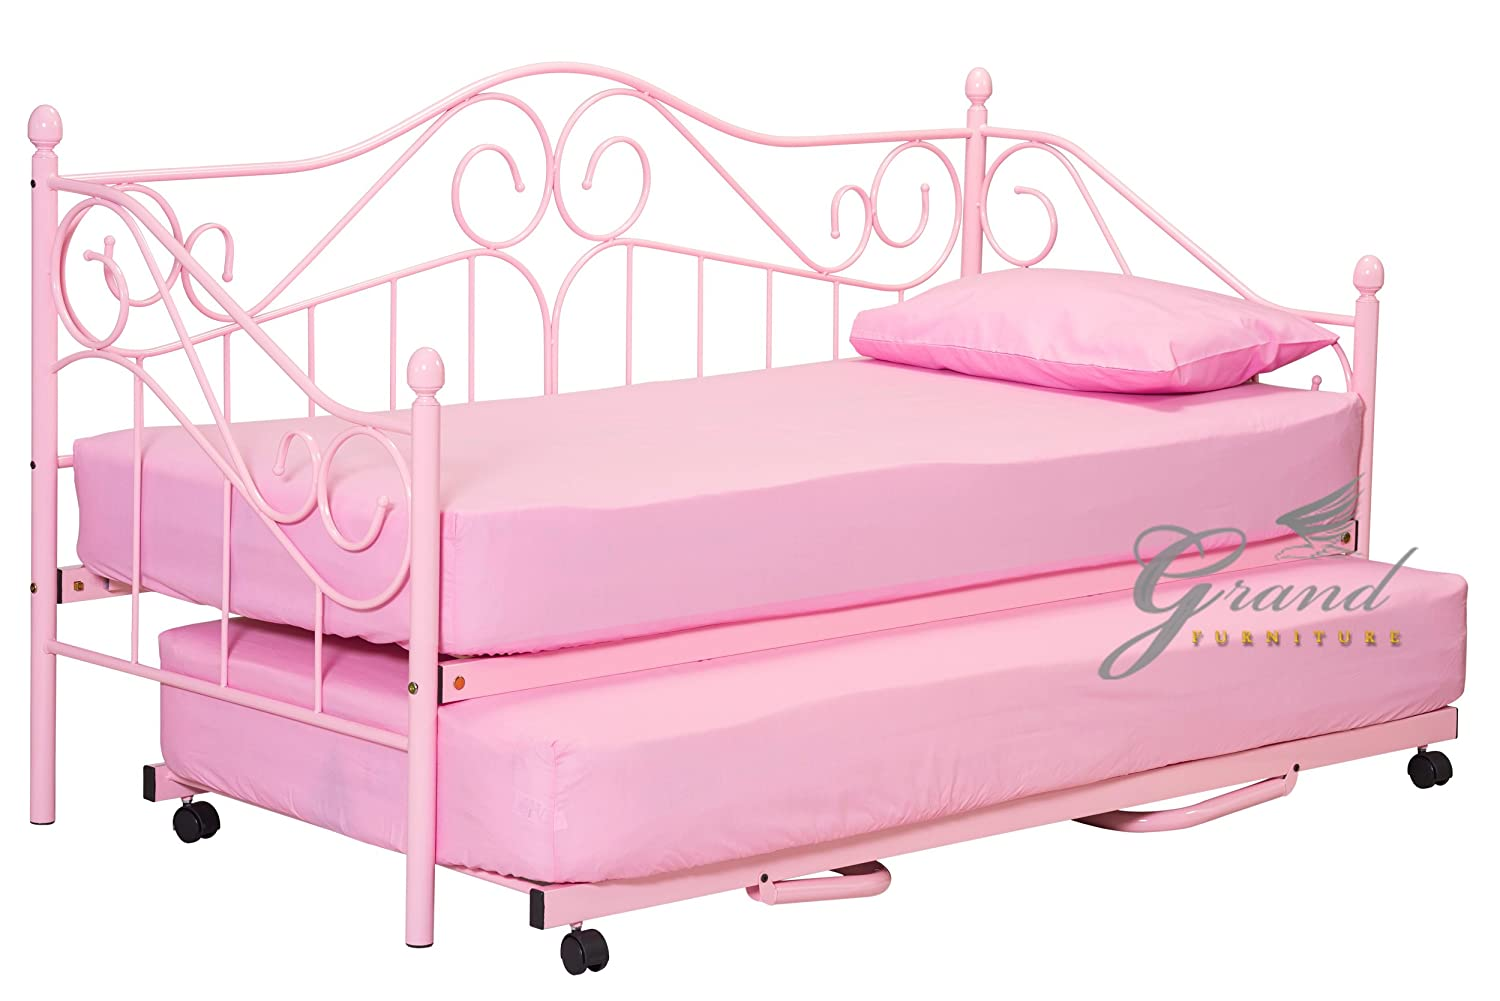 New Joseph Metal Day Bed with Trundle Pink For Girls Guest Bed Frame  Victorian Style 3FT Single: Amazon.co.uk: Kitchen & Home